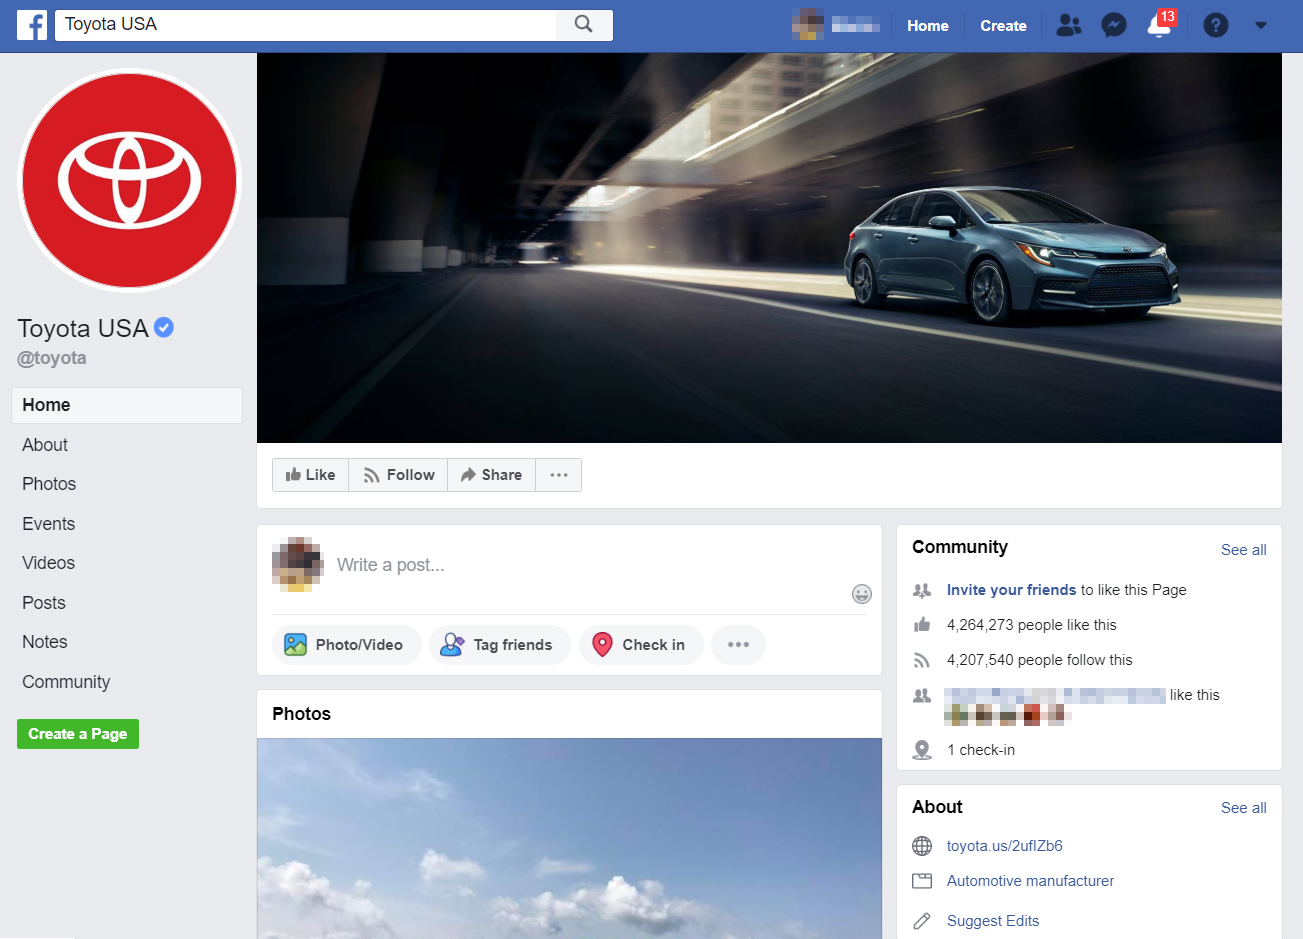 FBook Mastery - Toyota USA Facebook page